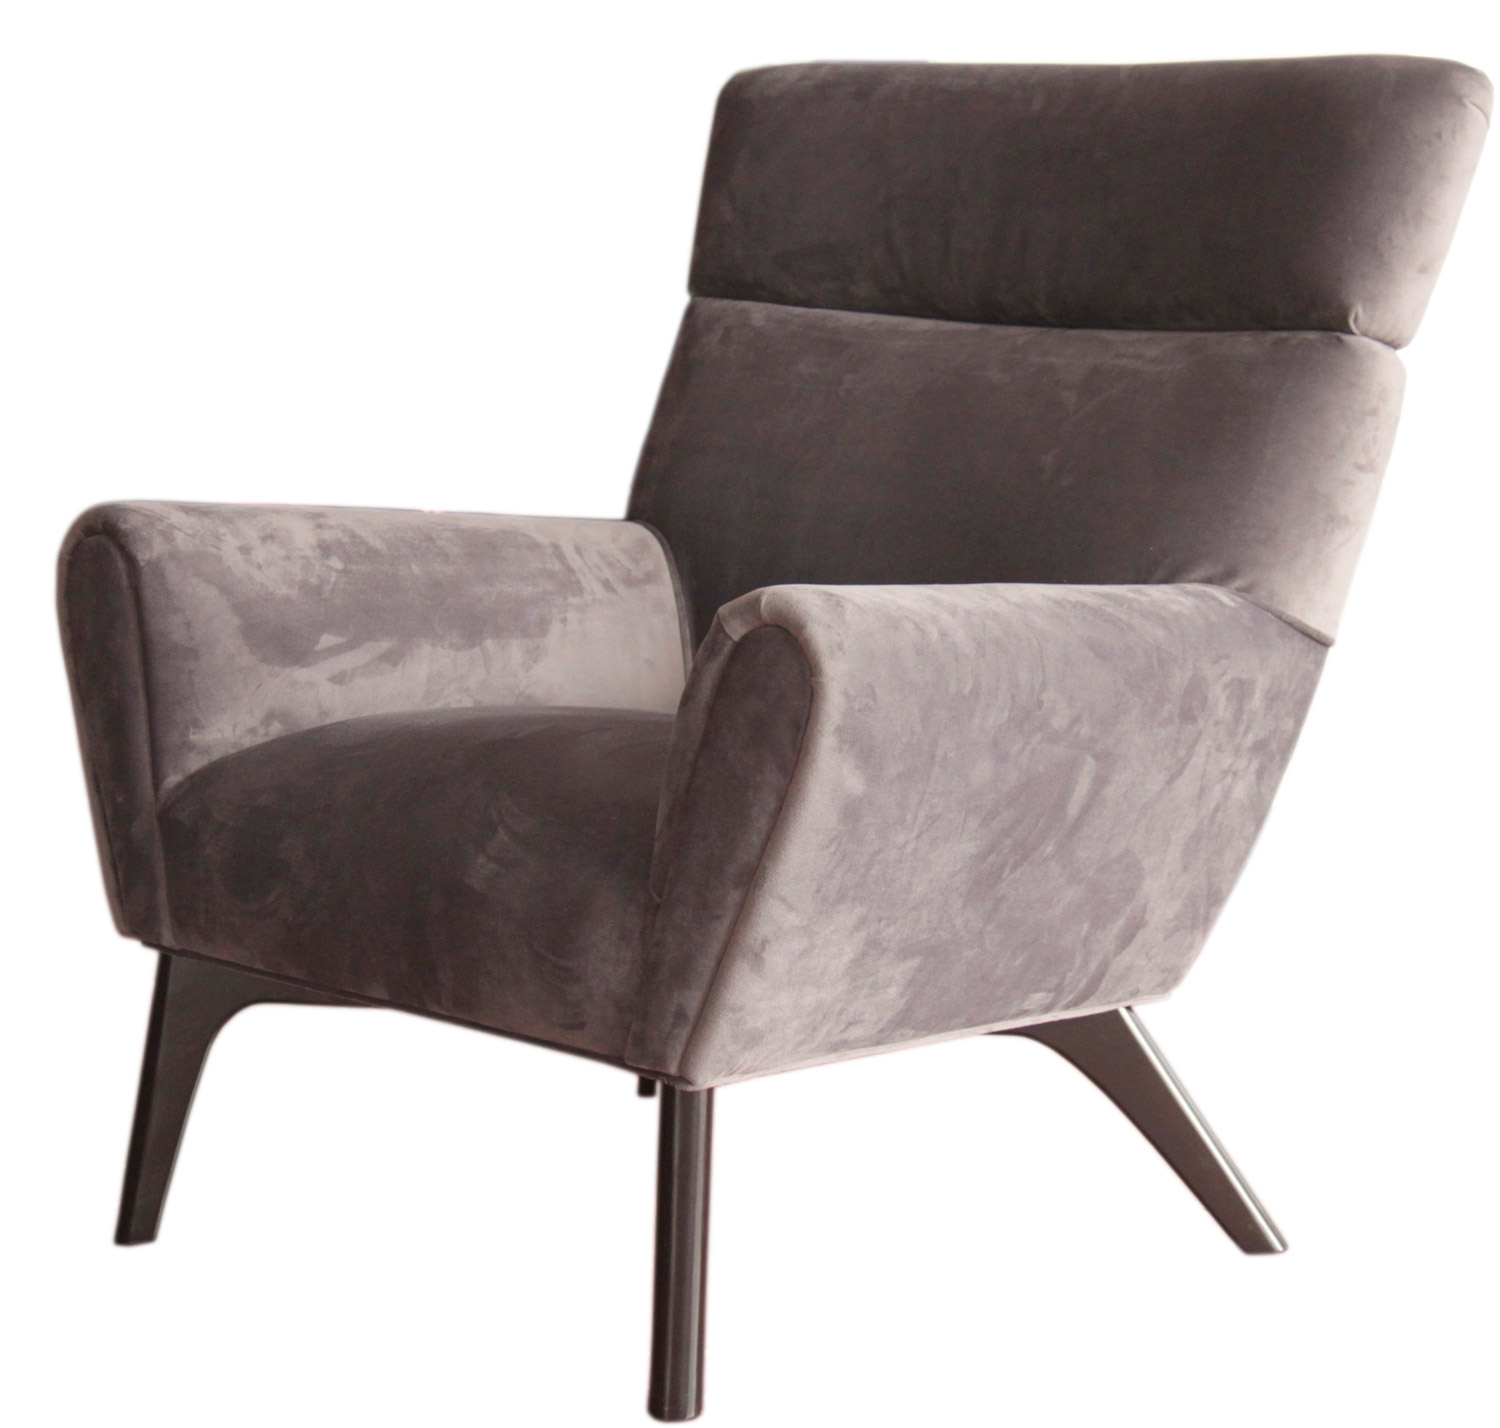 Armen Living Laguna Club Chair - Gunmetal Gray Fabric